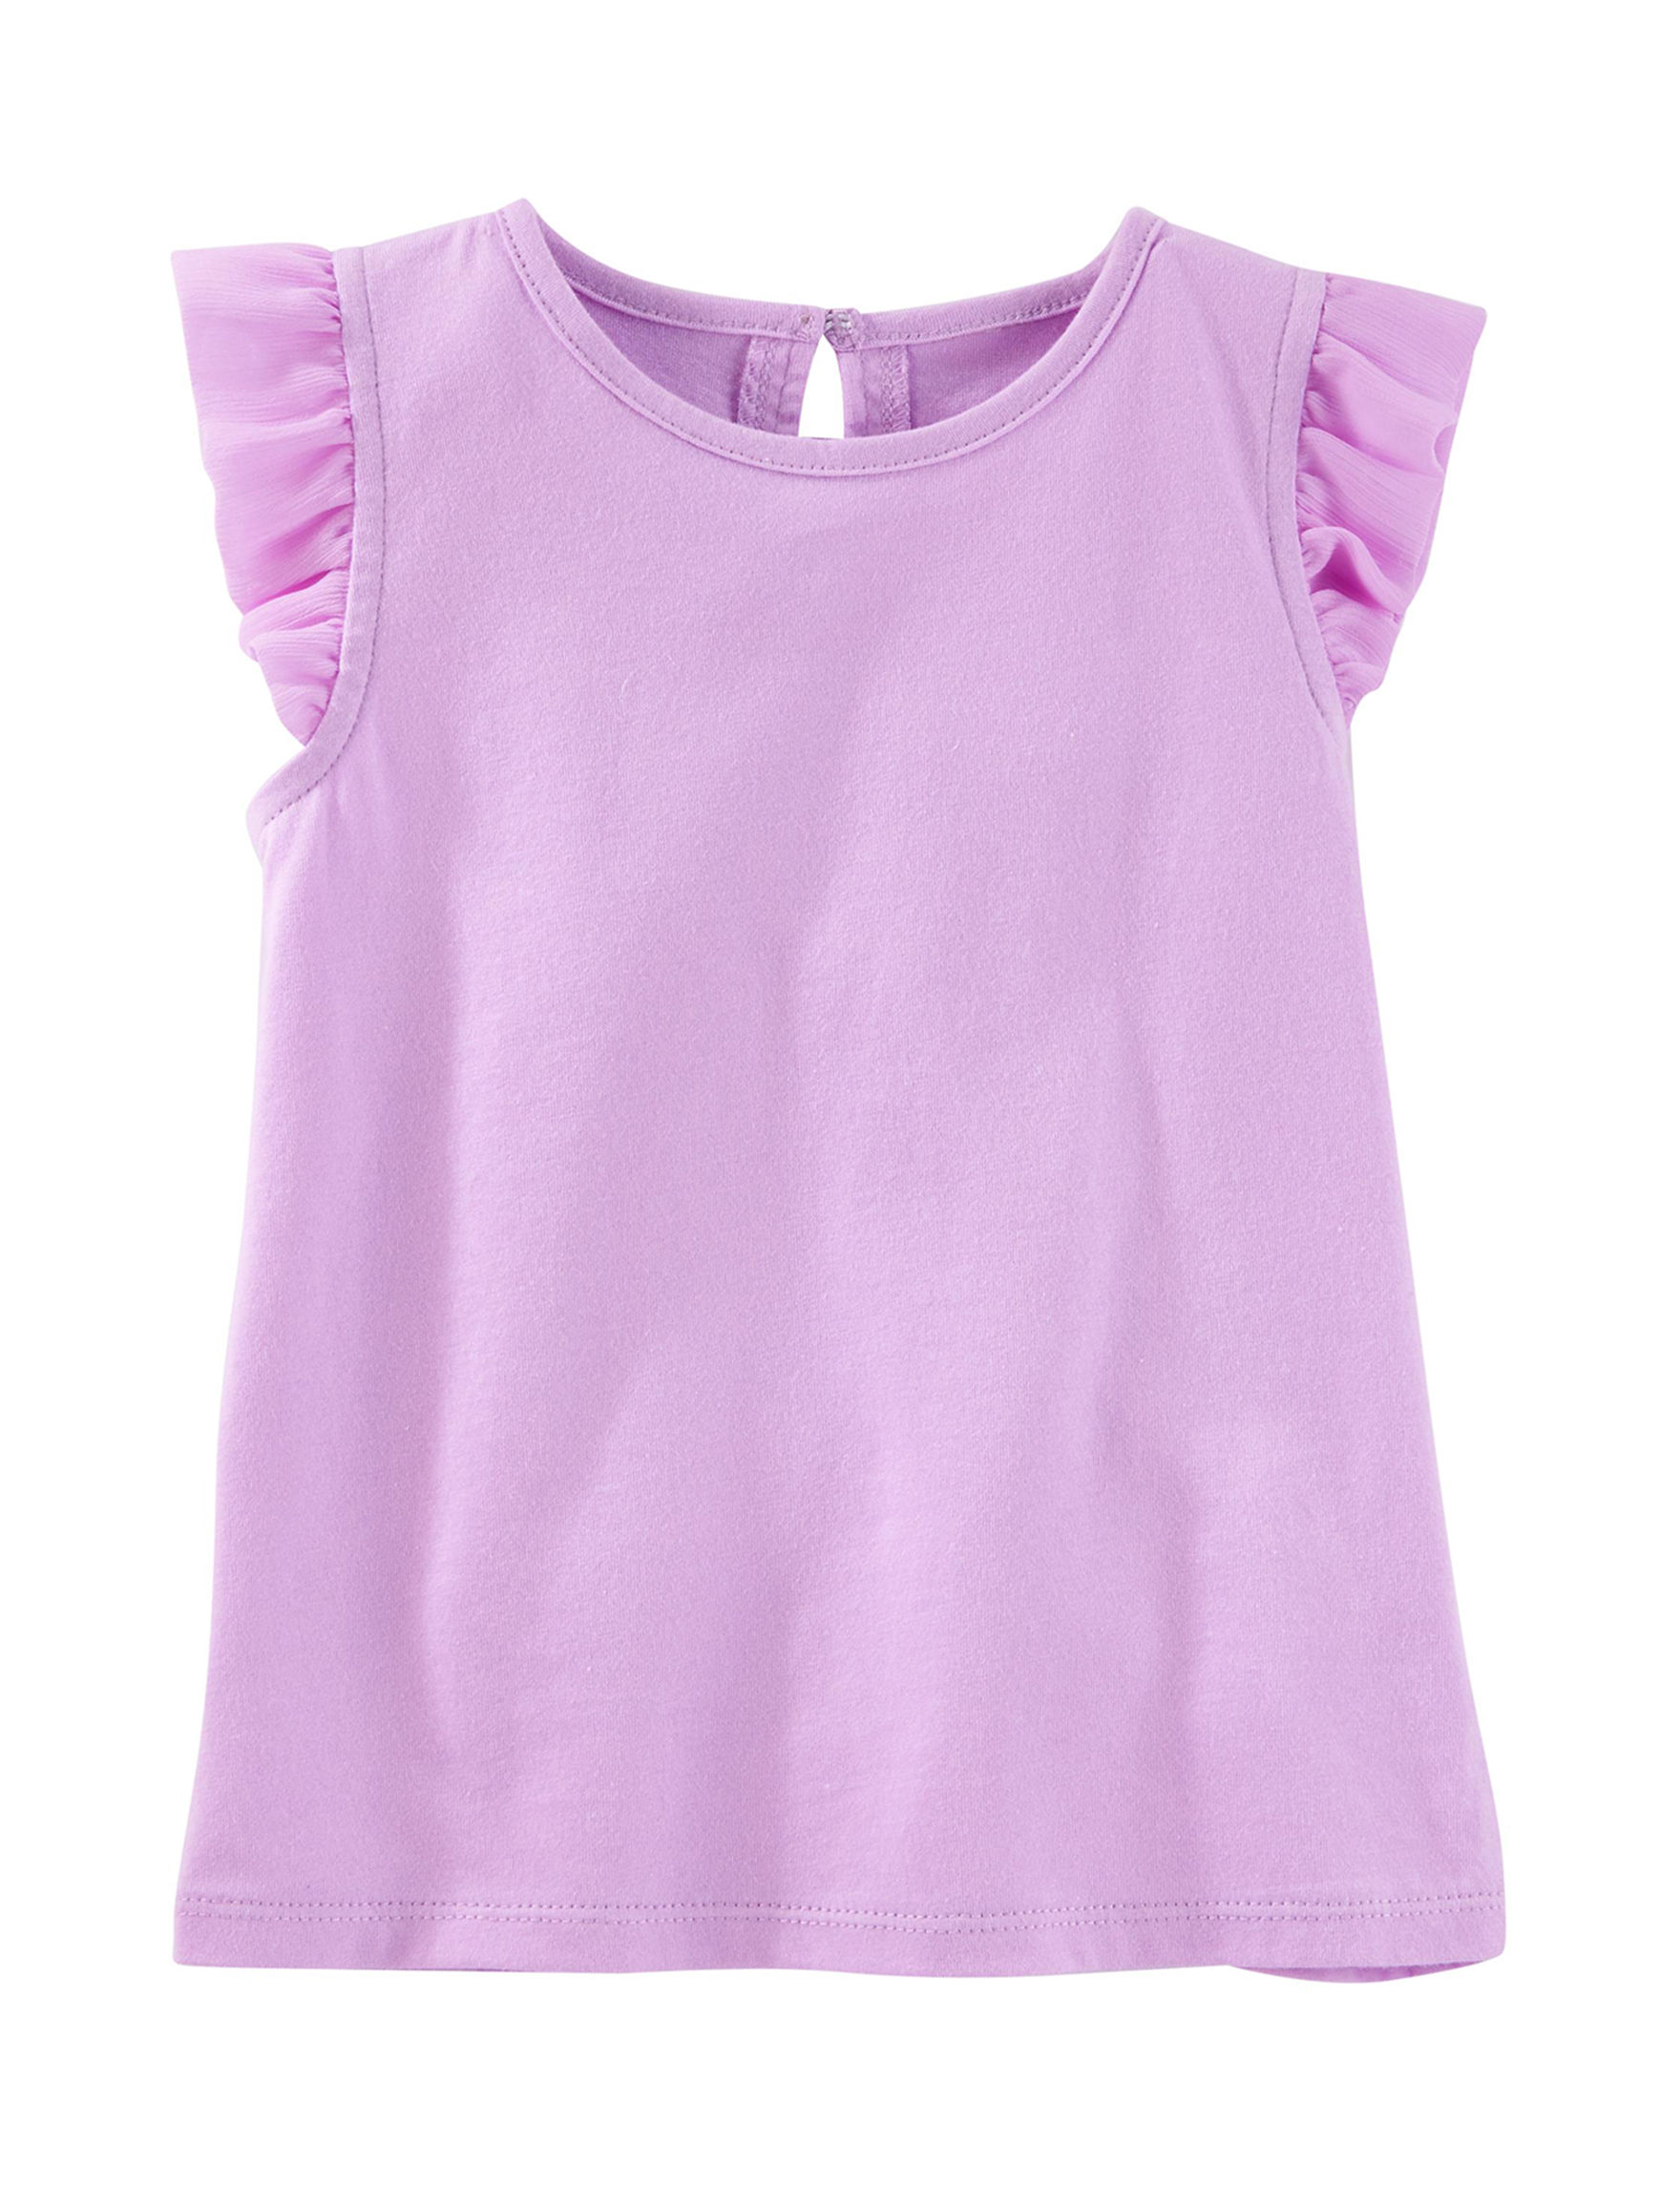 Oshkosh B'Gosh Purple